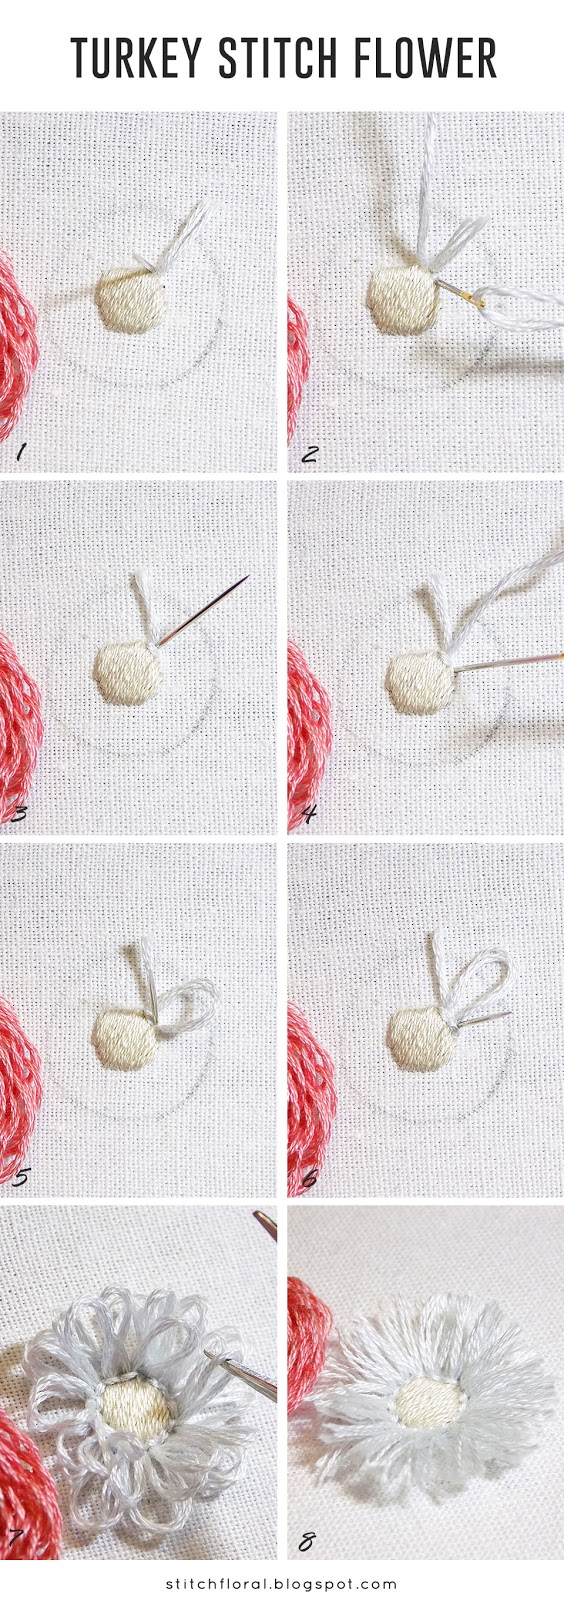 turkey stitch flower tutorial